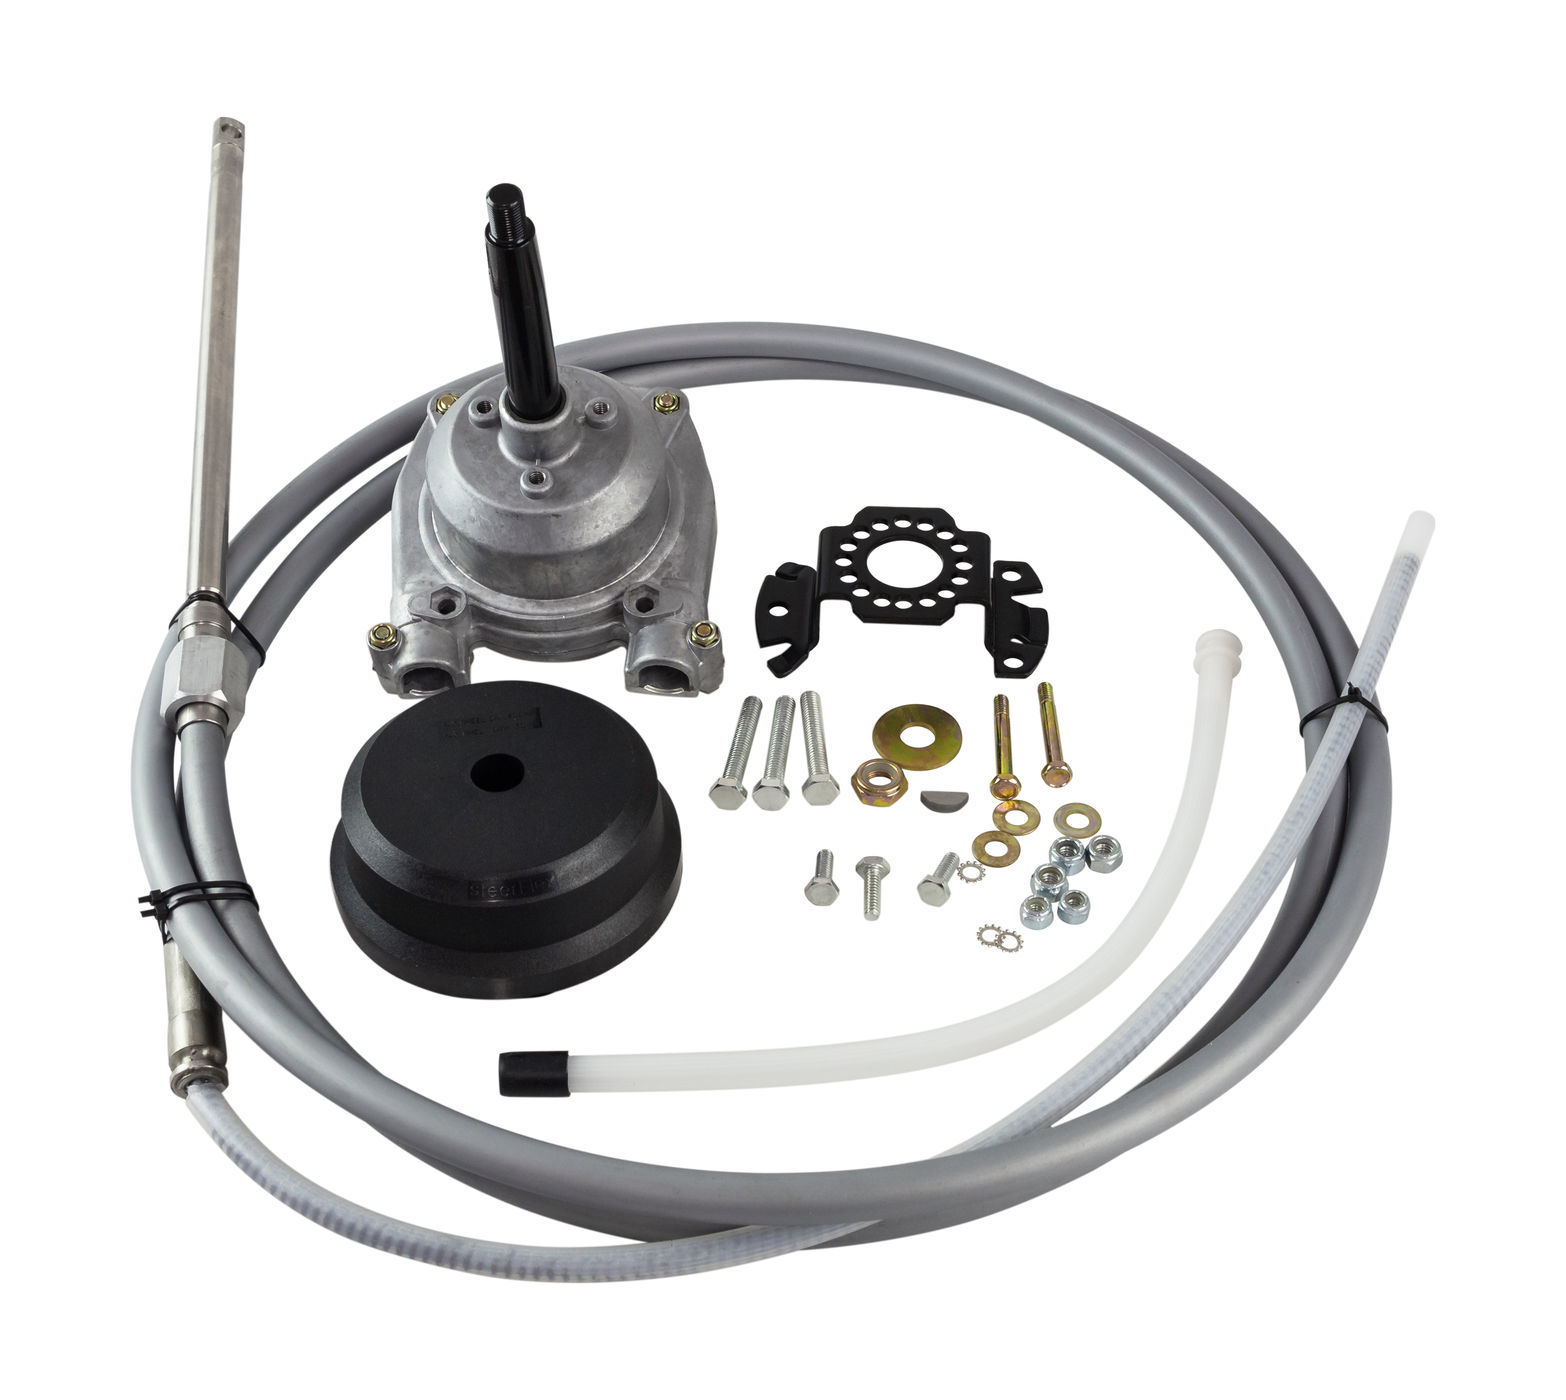 Steering Gear ZTS With Stainless Steel Cable 10 Feet (3,05) 560010